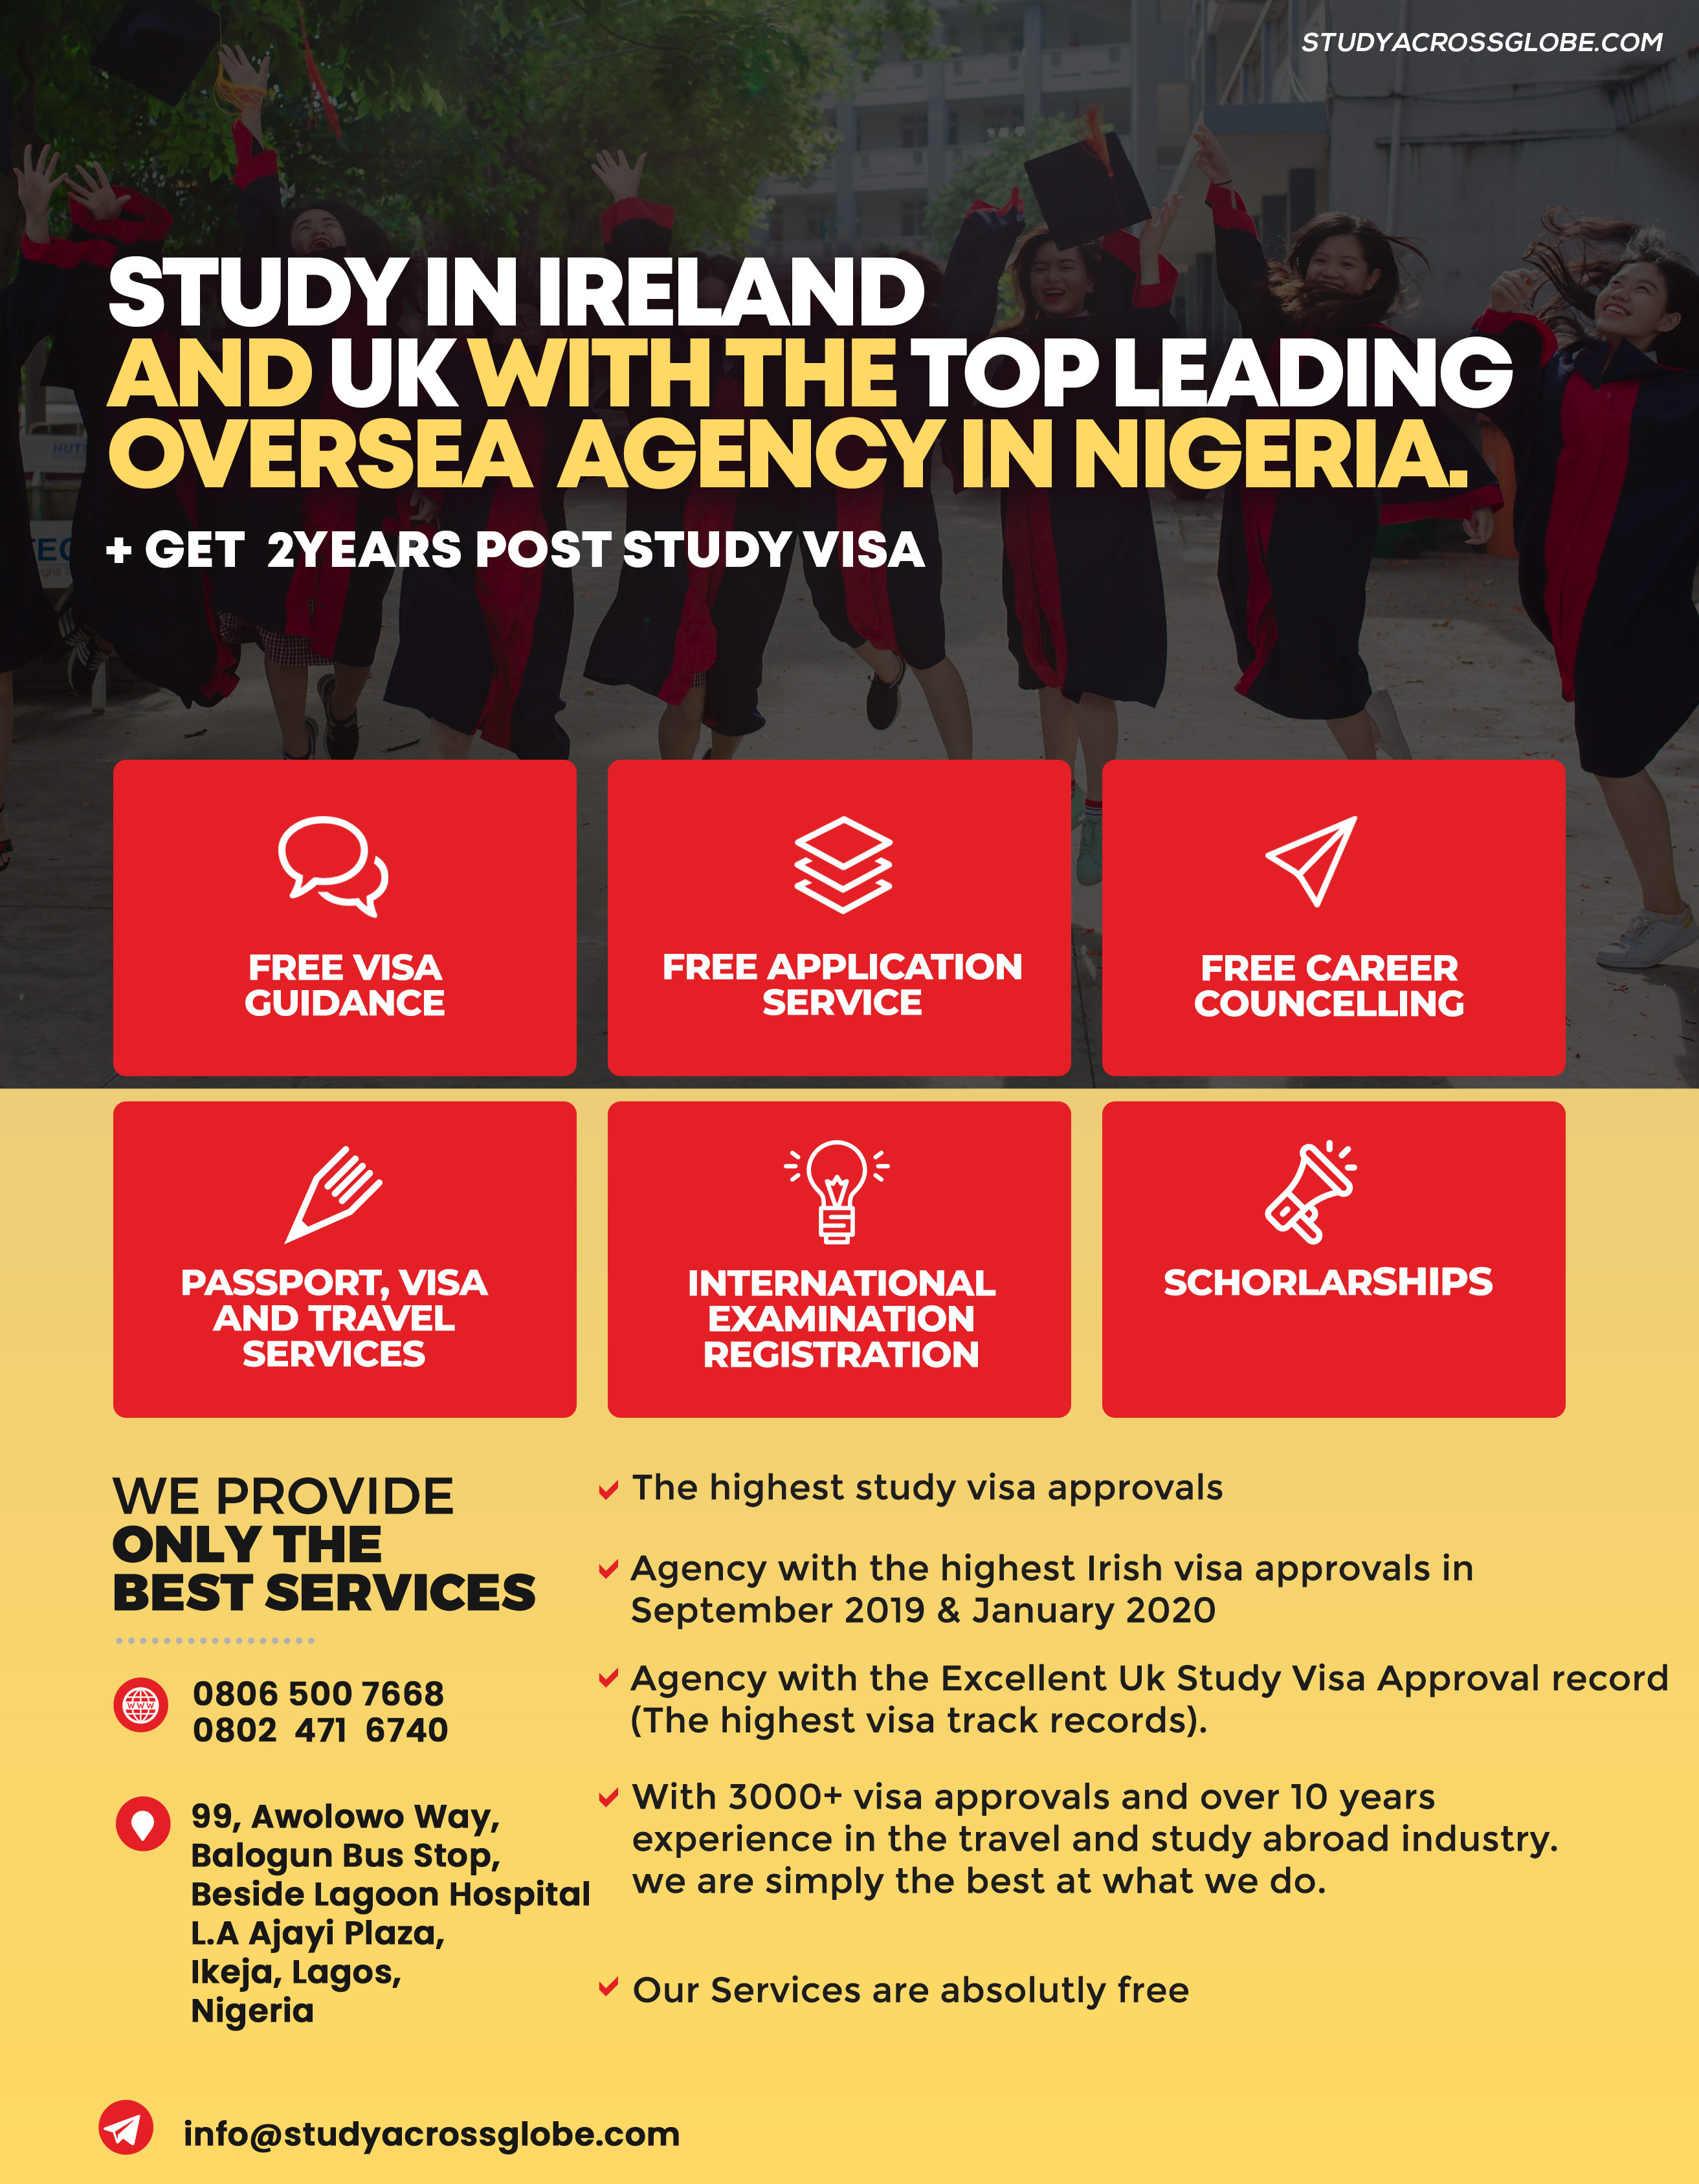 STUDY IN IRELAND AND UK WITH THE TOP LEADING OVERSEA AGENCY IN NIGERIA